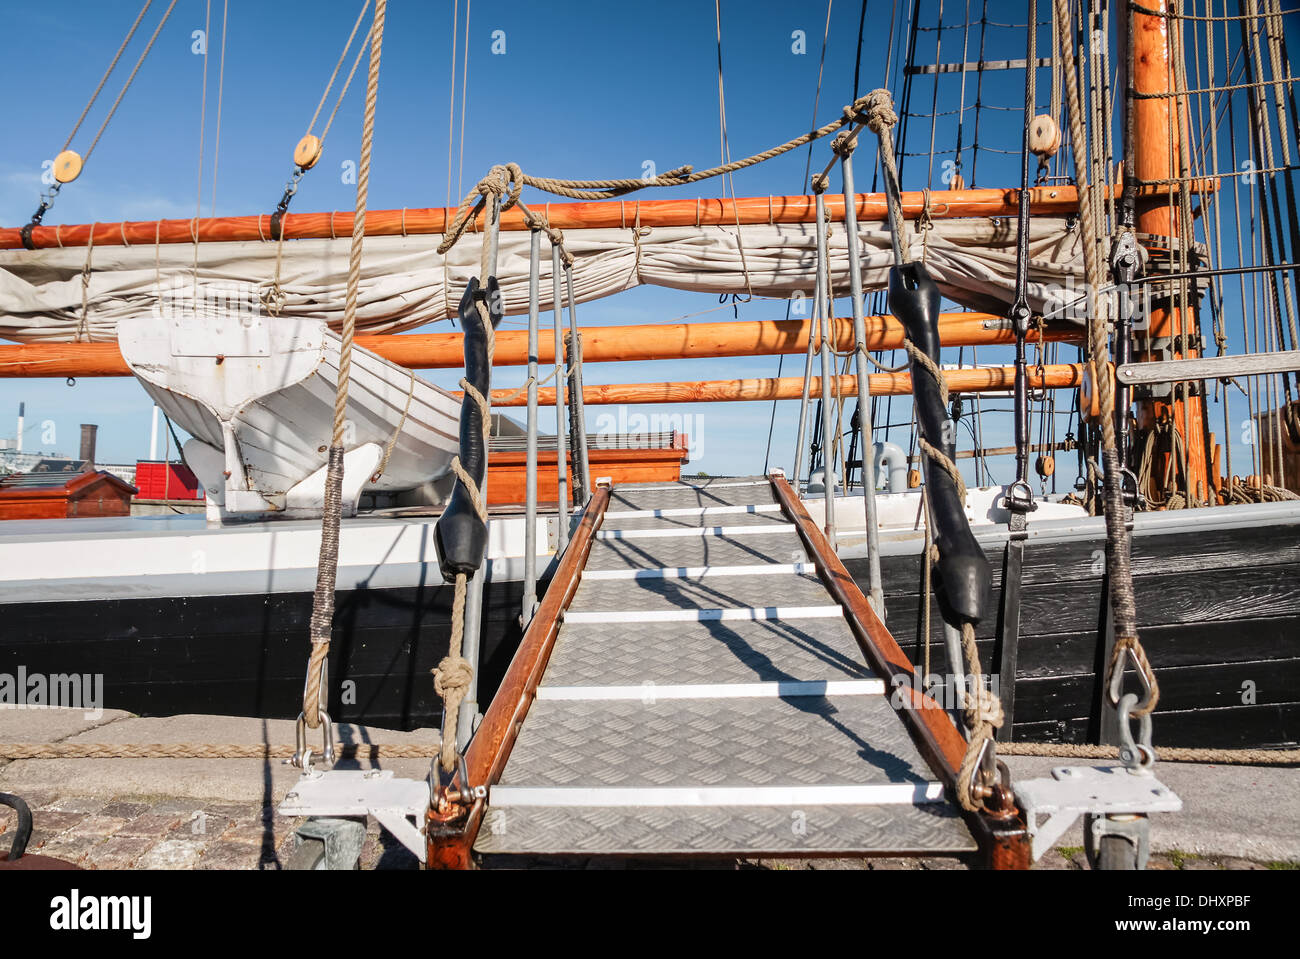 Runway of a tall sailing ship in Amaliehaven, Copenhagen, Denmark - Stock Image